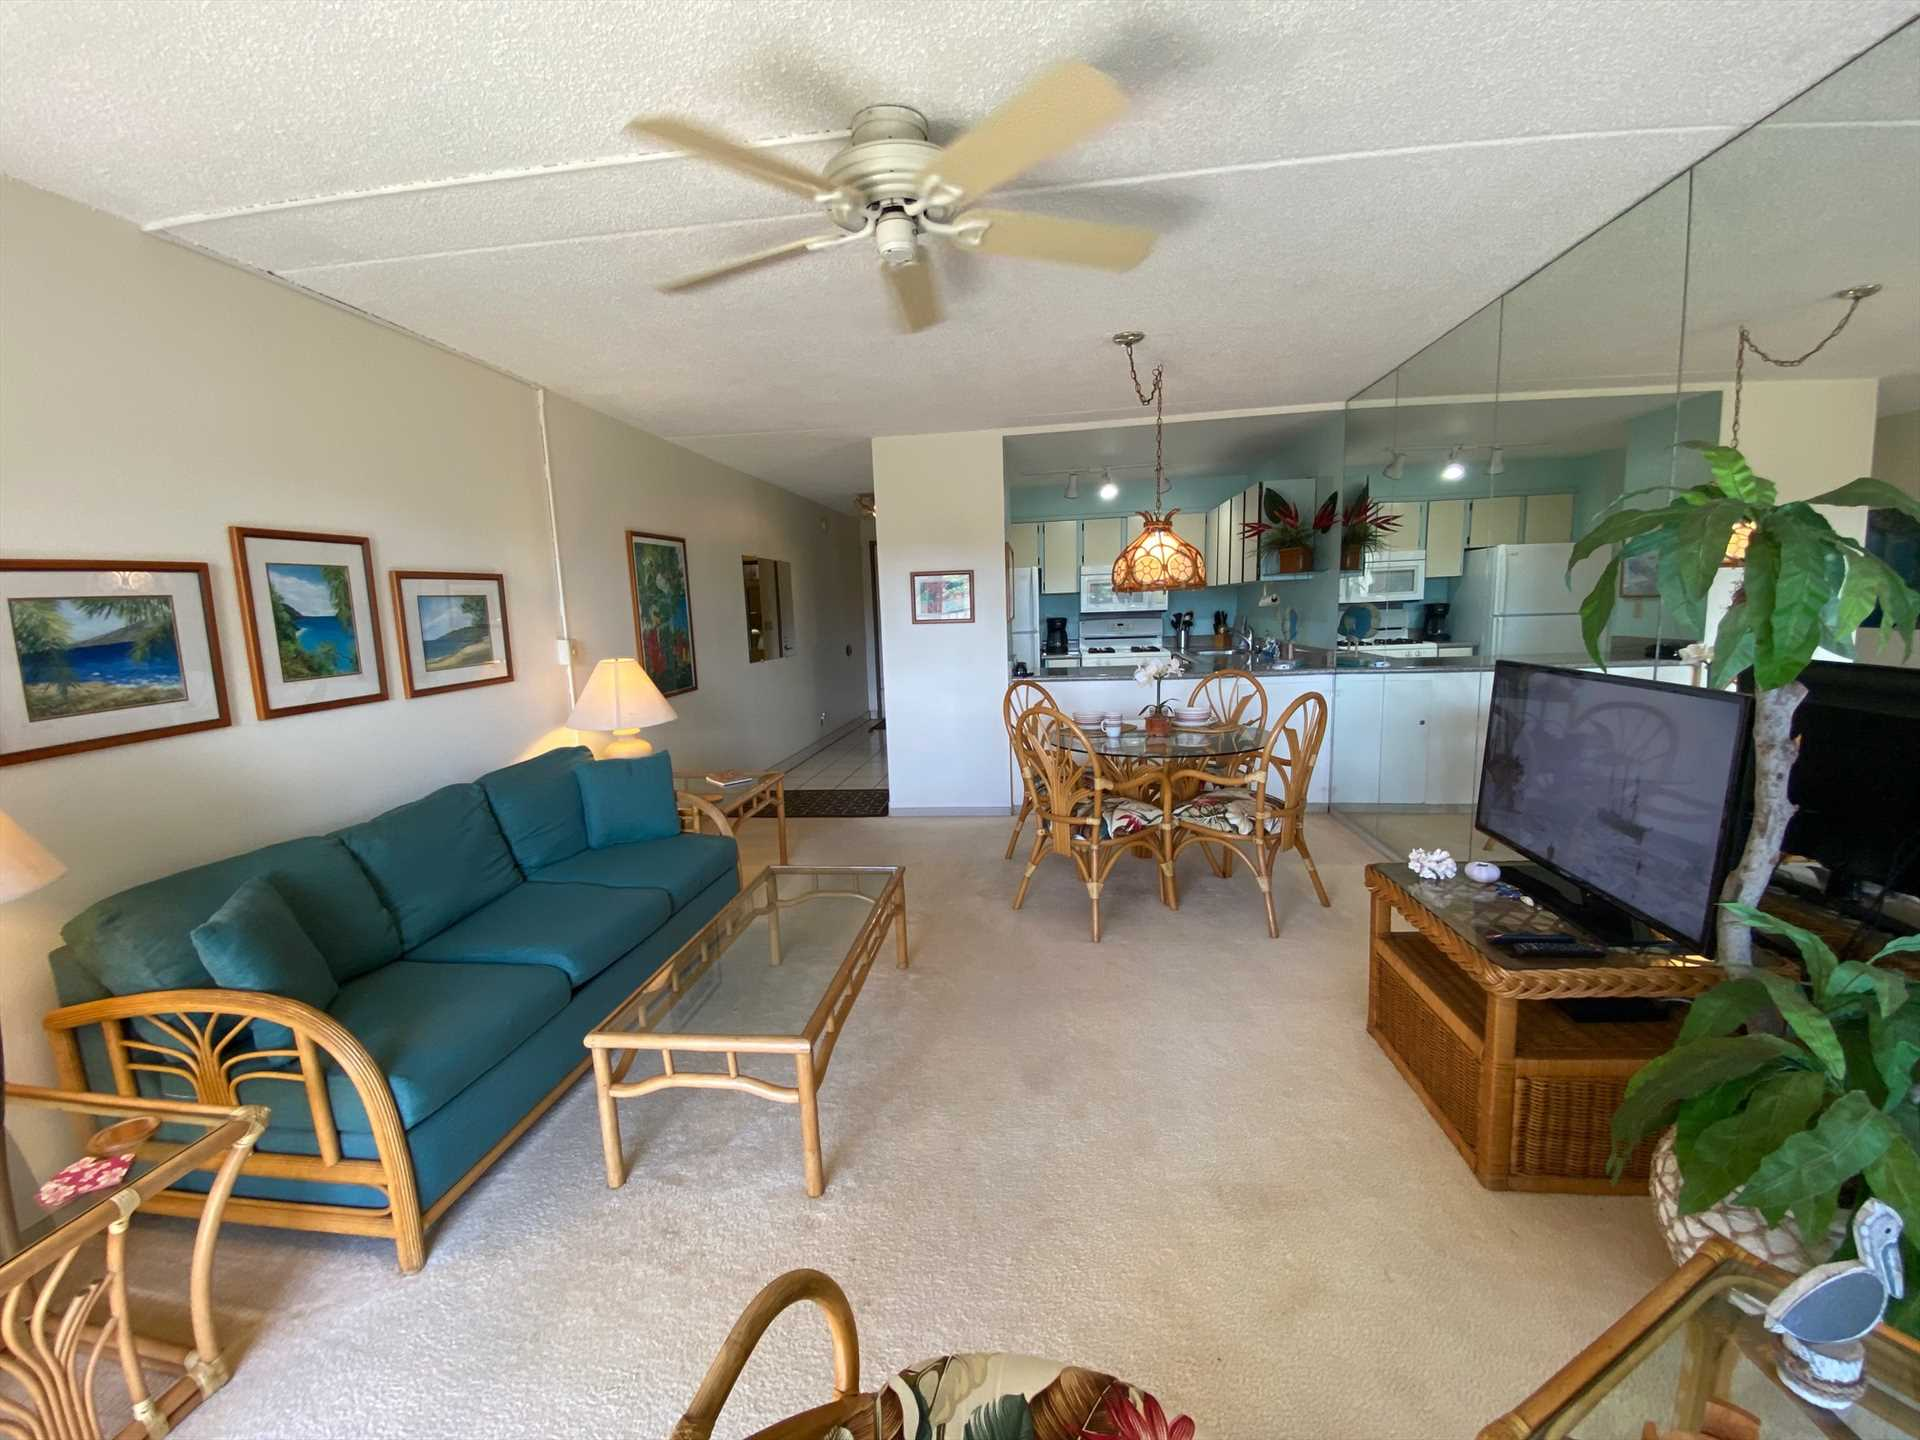 Unit 406 - Living Room includes large screen TV with basic c